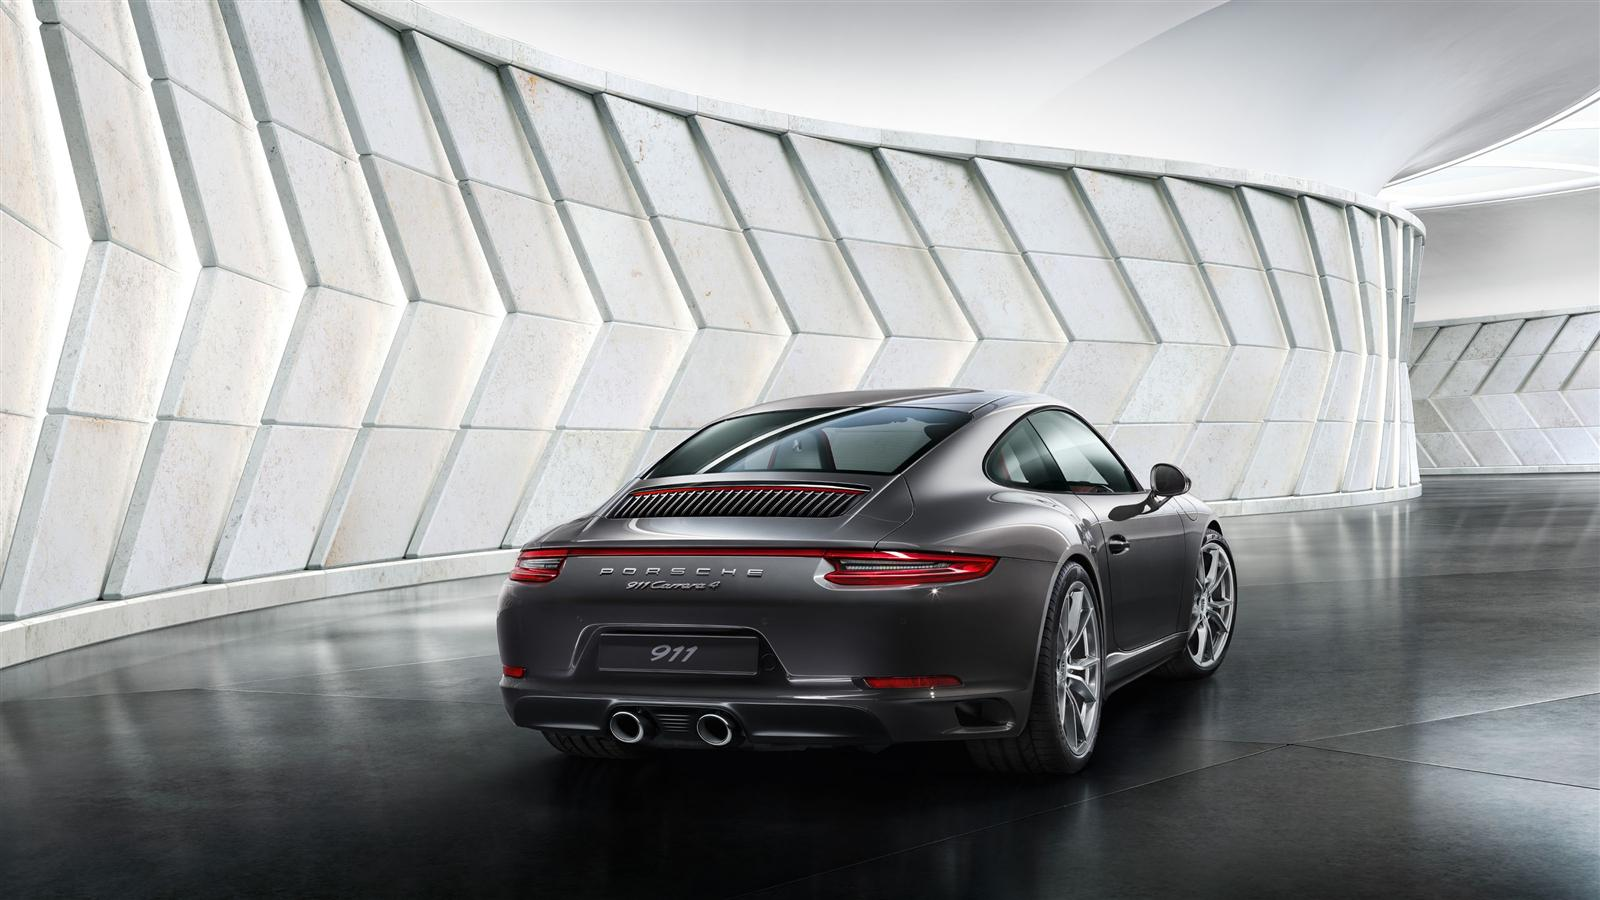 Get To Know The 2016 Porsche 911 Lineup